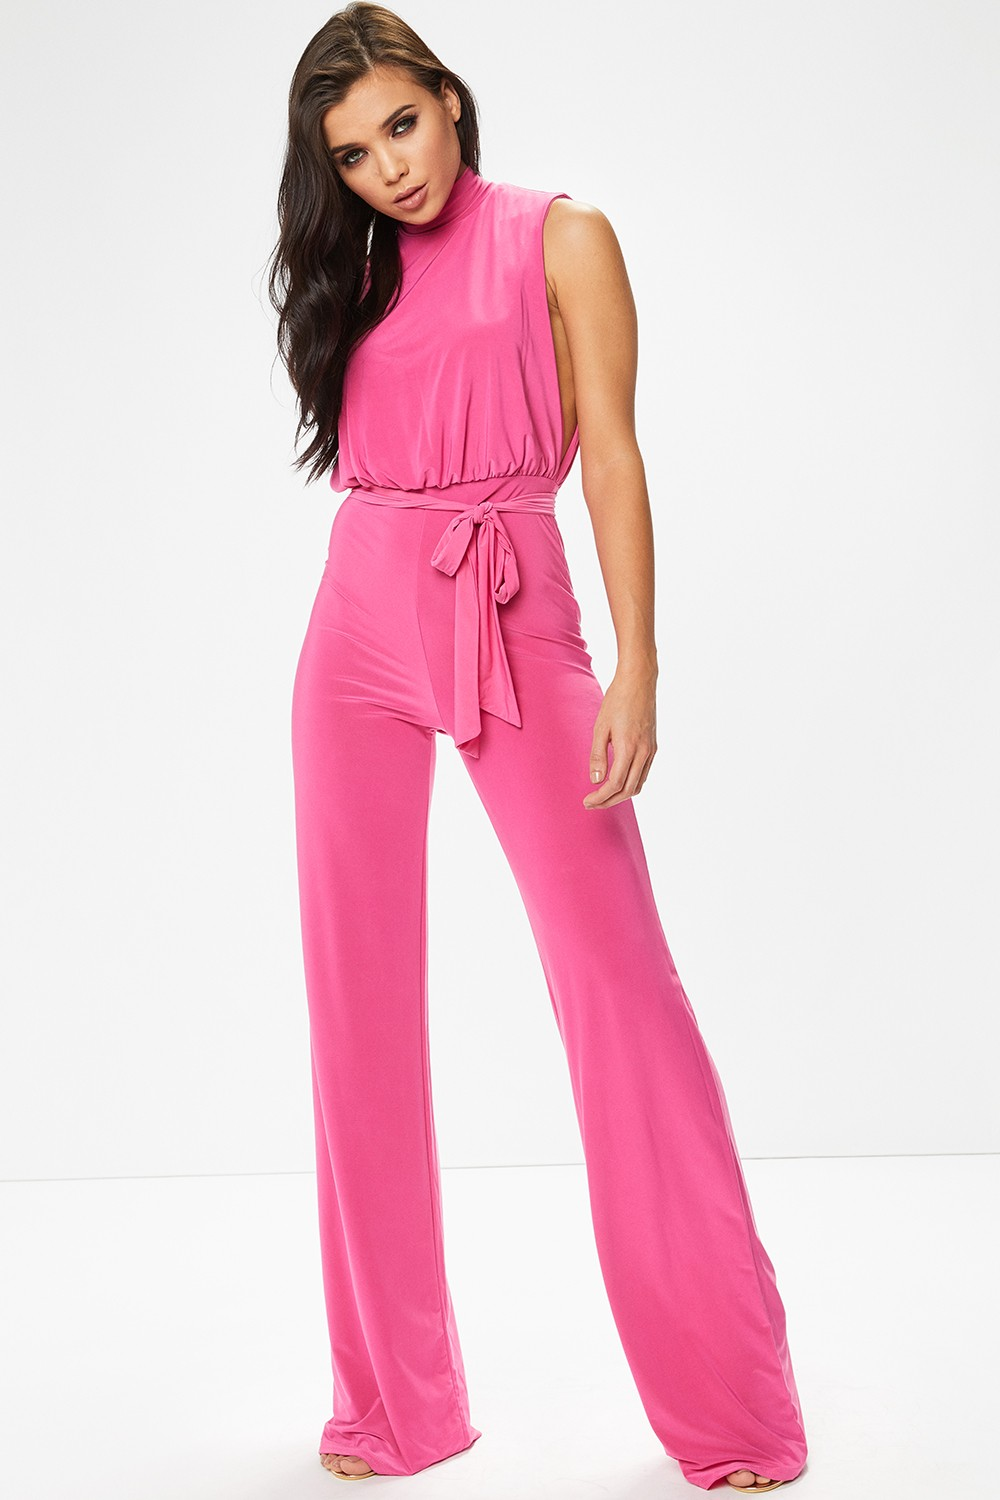 pink jumpsuit hover to zoom tjzimzp